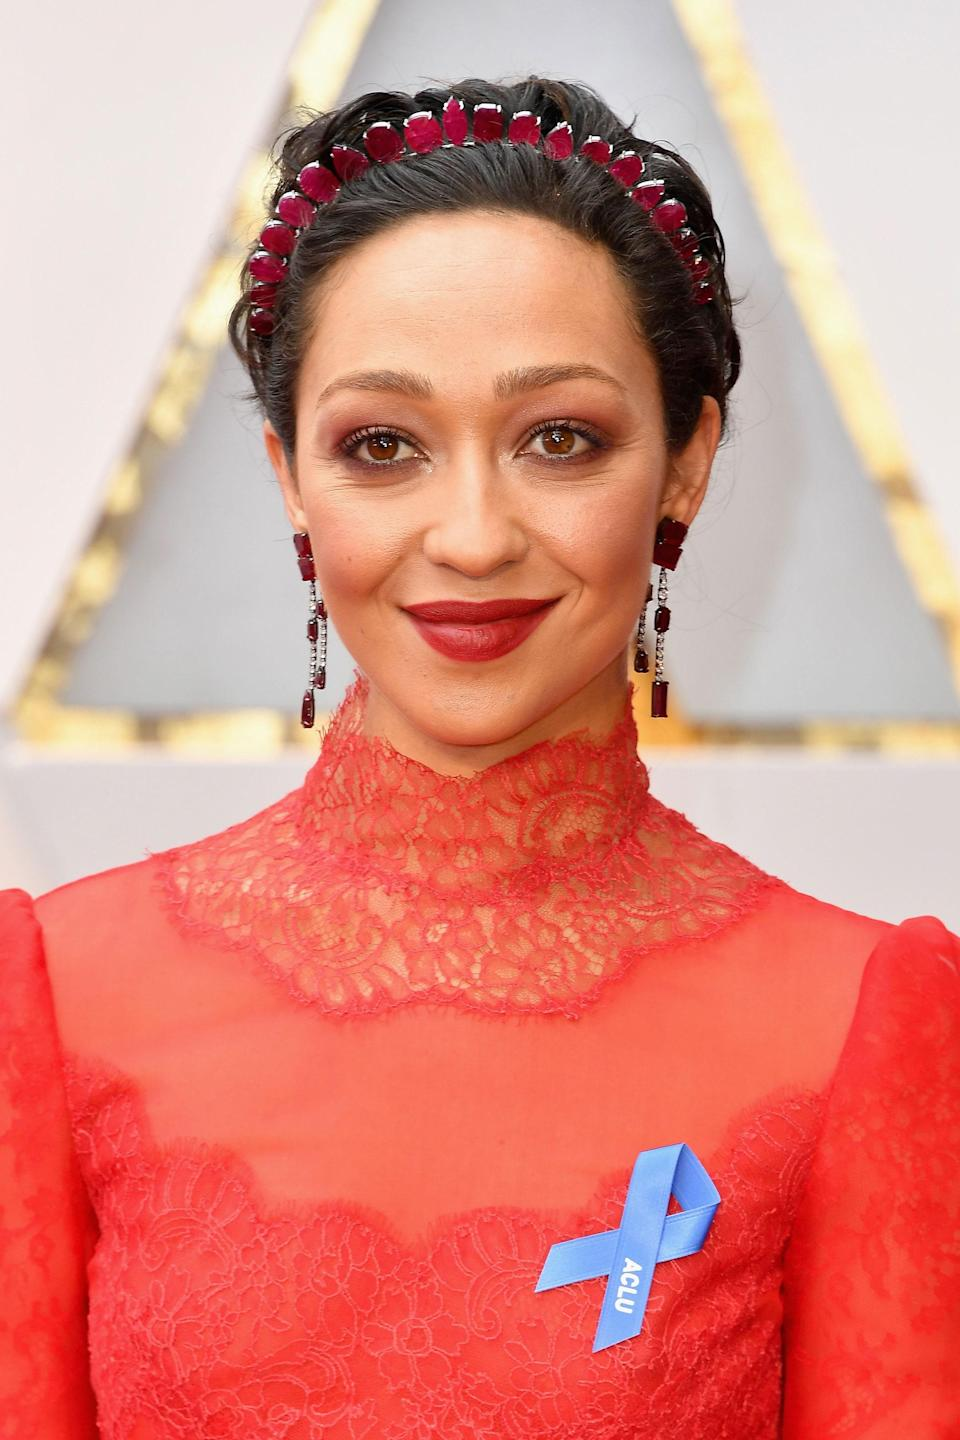 The ruby-flecked tiara, earrings, and ring worn by Ruth Negga on Oscar night may have had an old-world flair, but they were created especially for the occasion. Designed after conversations between Irene Neuwirth and Negga's stylist, Karla Welch, the pieces were meant to echo the regal feel of royal jewels while adding a few modern twists. Case in point: The epic headband featured 146 carats worth of Mozambican rubies of different shapes and sizes, set in blackened white gold for contrast instead of the traditional platinum or yellow gold.